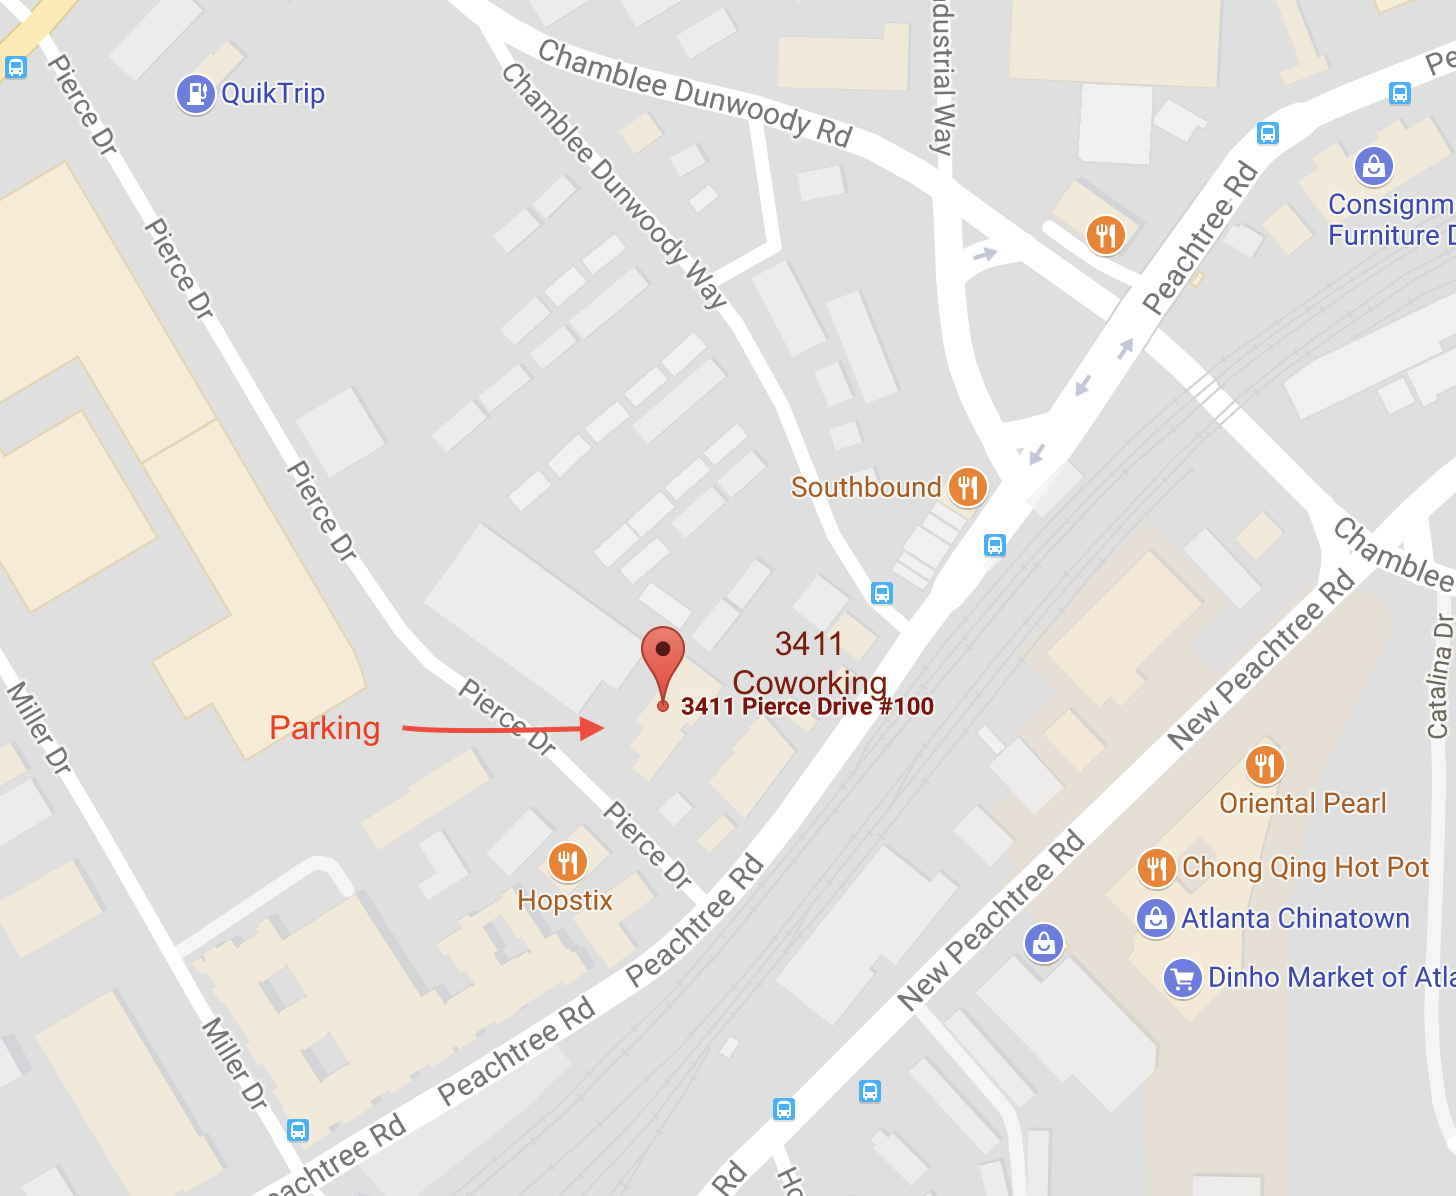 How To Find Us 3411 Coworking Is A Stand Alone Building Parking Is Along The Side And Front Once You Check In Make Your Way To The Back Area To The